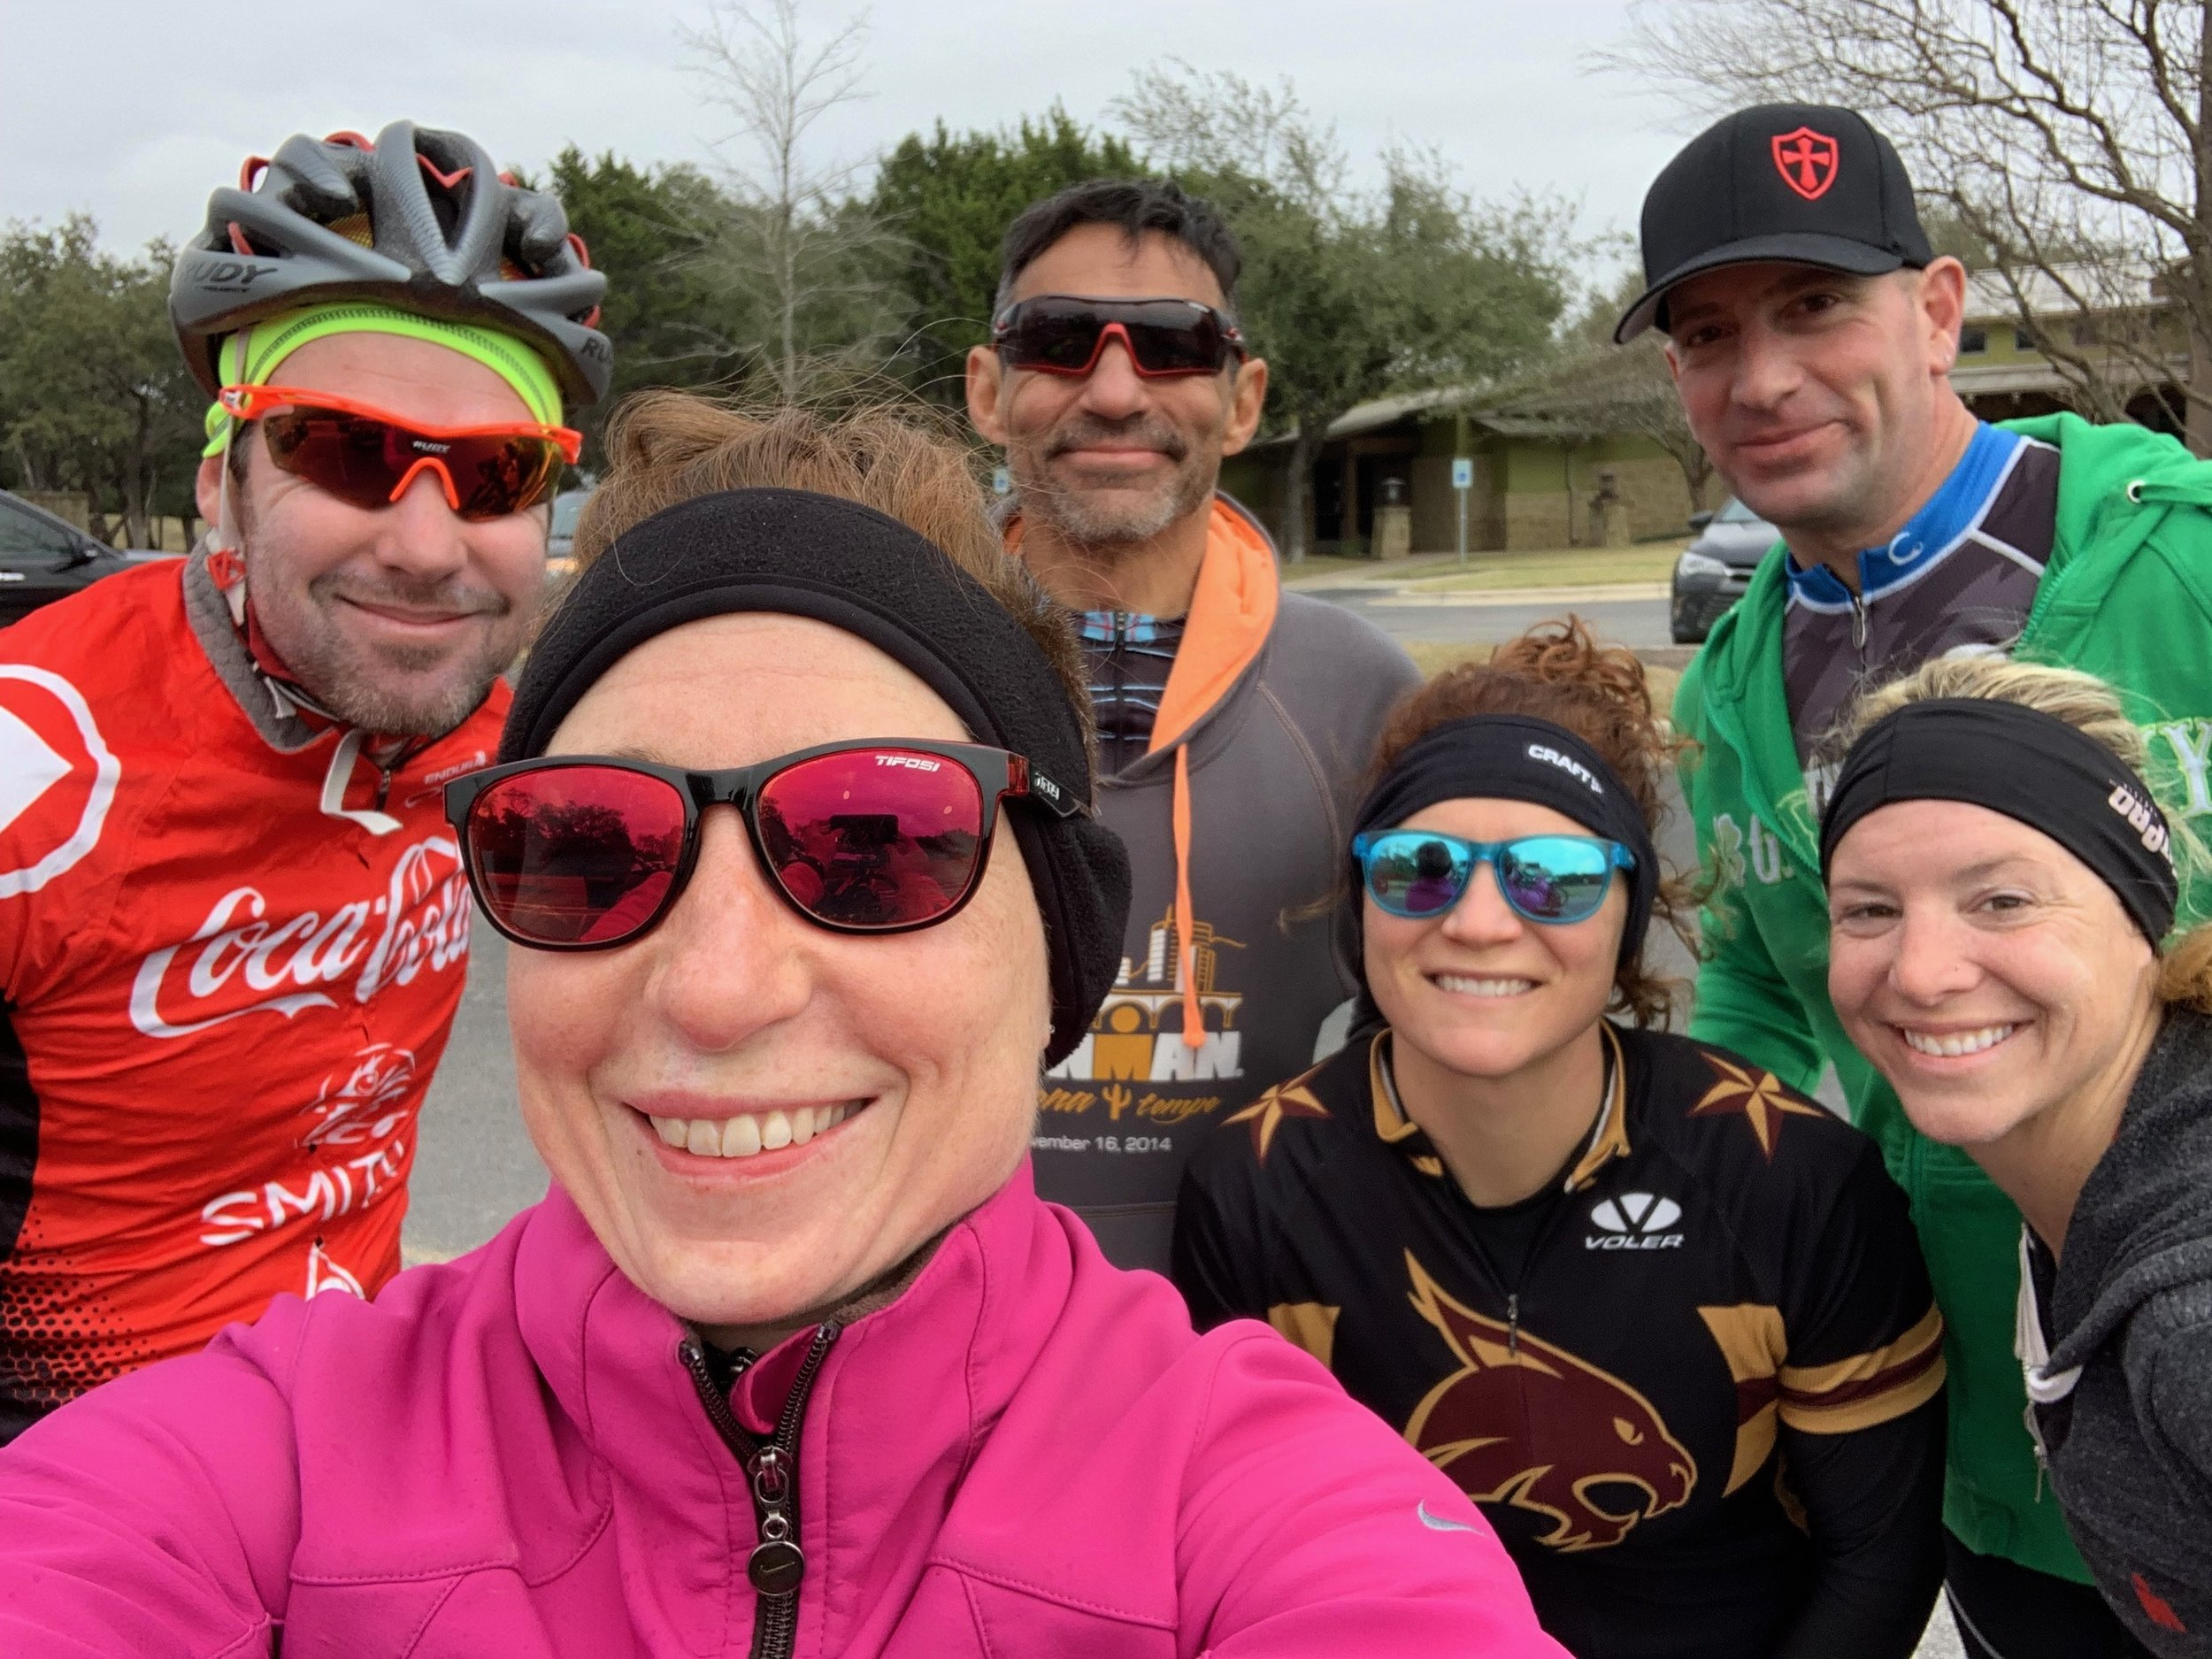 This bunch rode four hours of hills in the cold and wind on Saturday. (Left to right) Coach Barny, me, Padre Mora, Haley Koop, Matt Prentice, Carly Conrad.